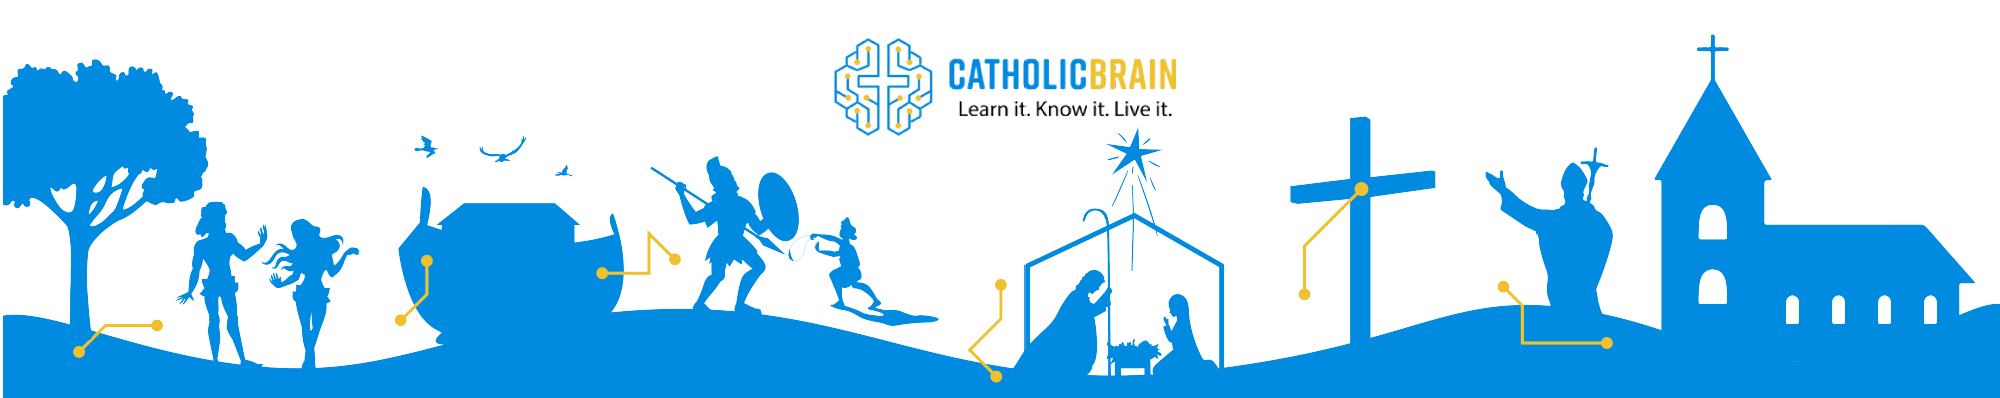 Catholic Brain Footer Image